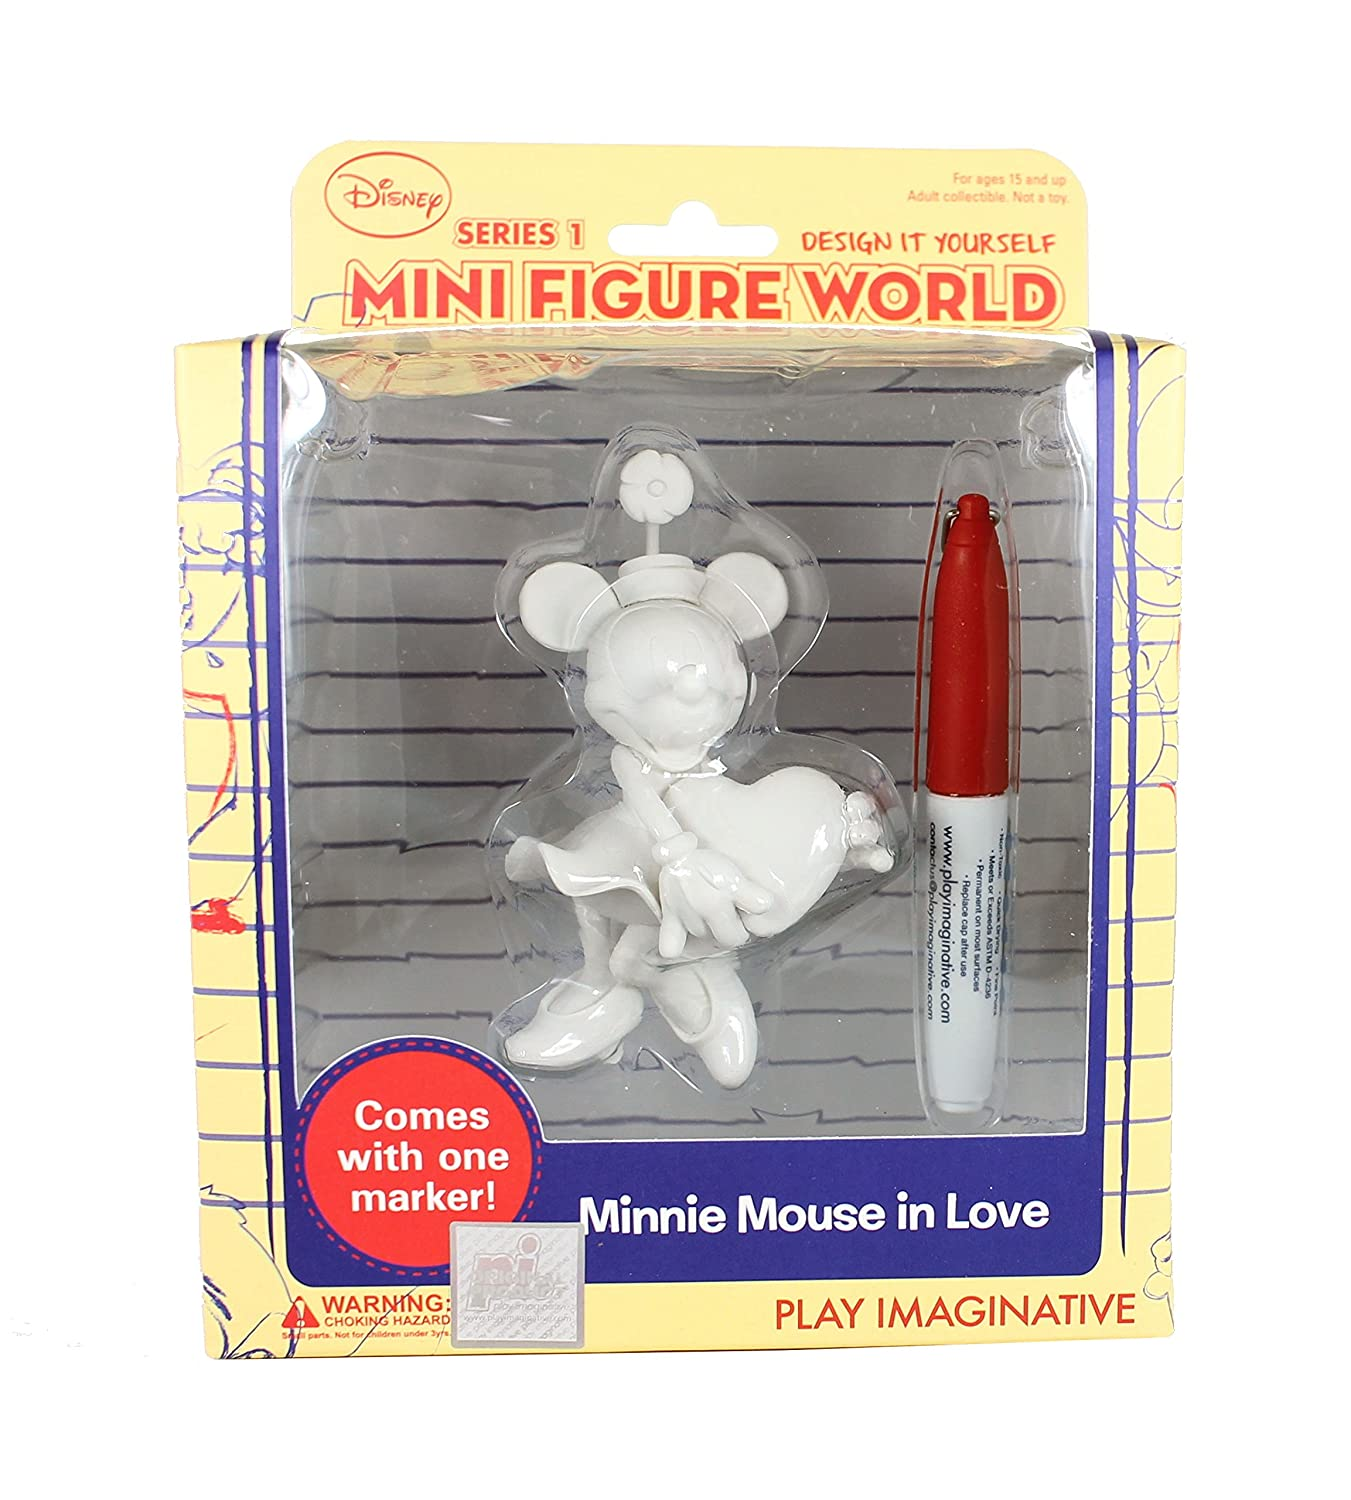 Minnie Mouse in Love Disney Design It Yourself Mini Figure World Series 1